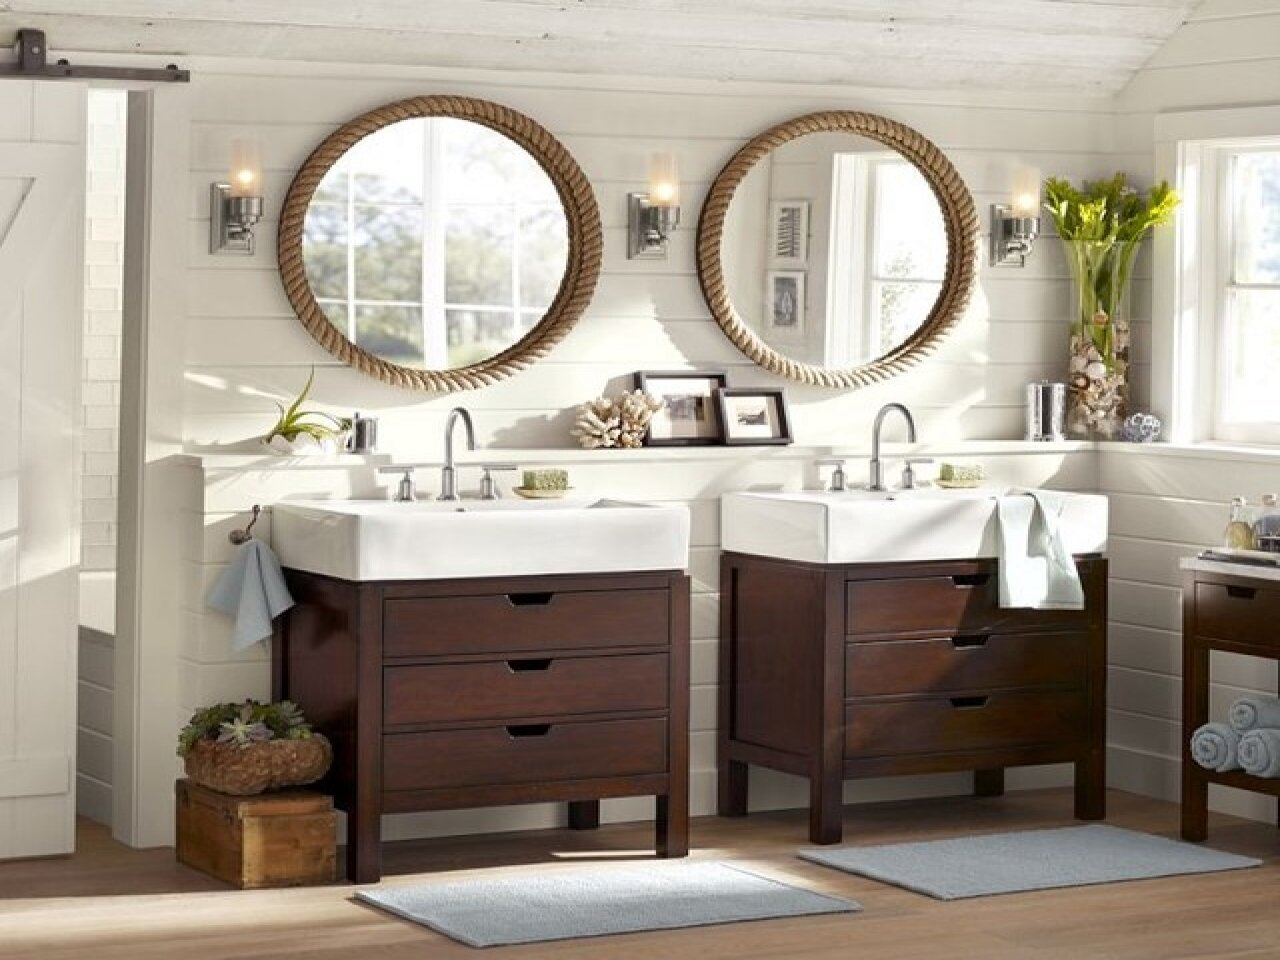 Pottery Barn Vanity for Bathroom Cabinet Design Ideas: Pottery Barn Vanity | Pottery Barn Mason Vanity | Console Sink With Shelf